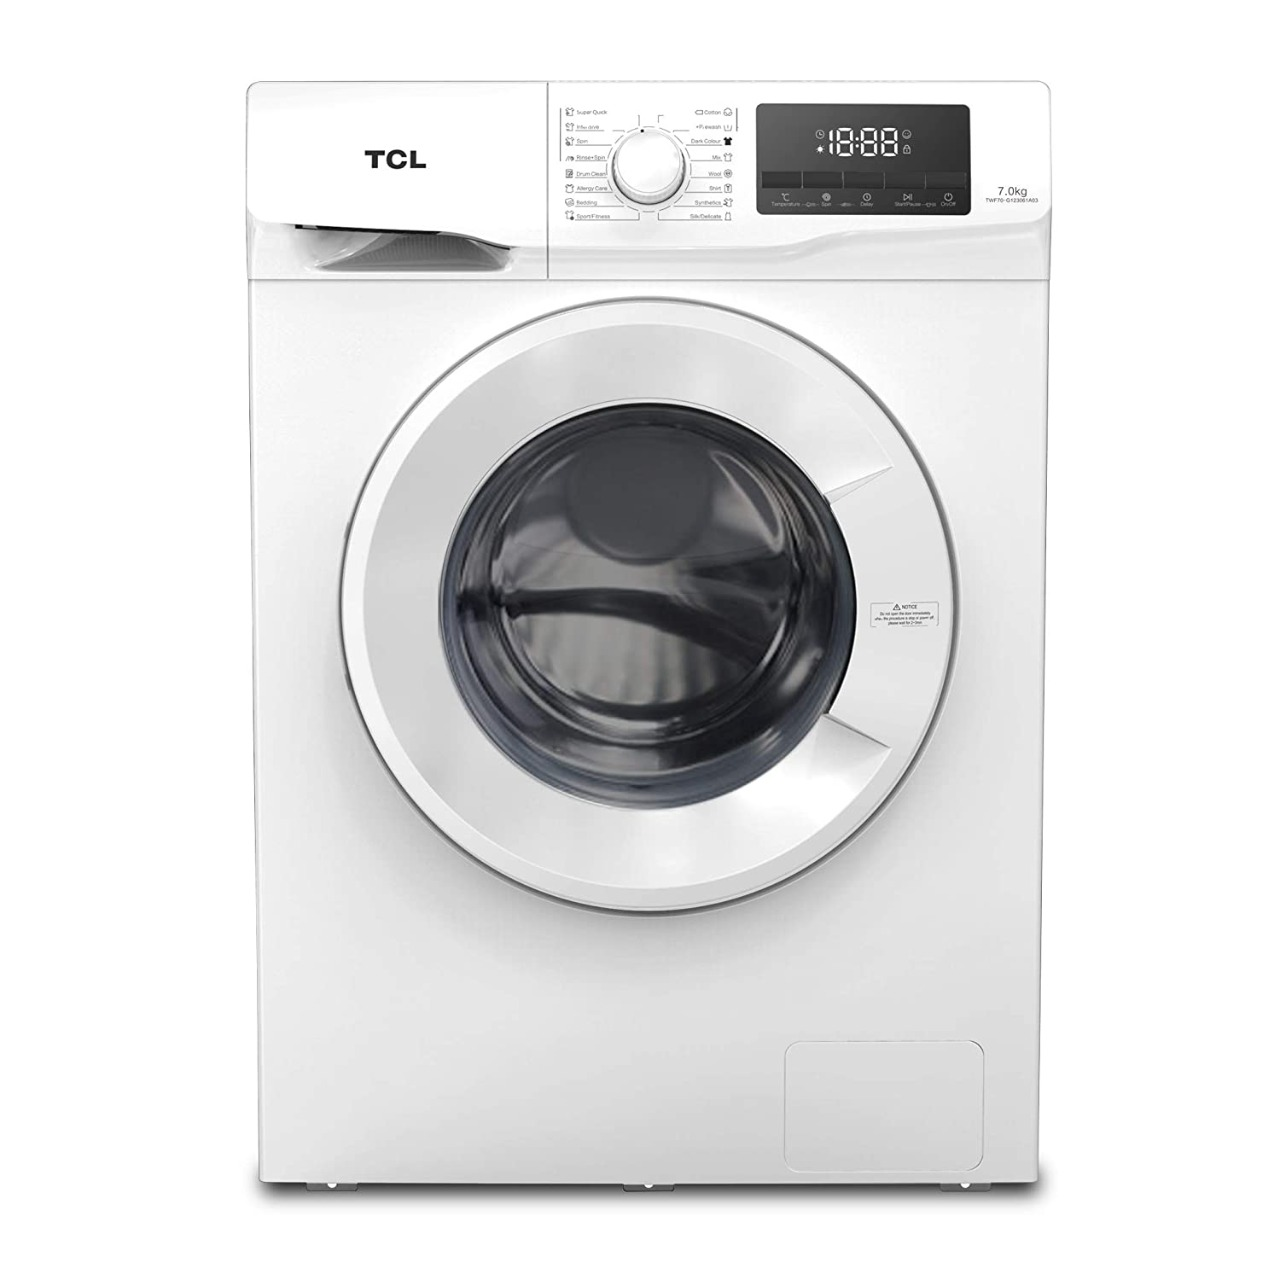 Amazon Great Indian Festival Sale: Sale on front loading washing machines of every brand, more than 35% discount on Amazon